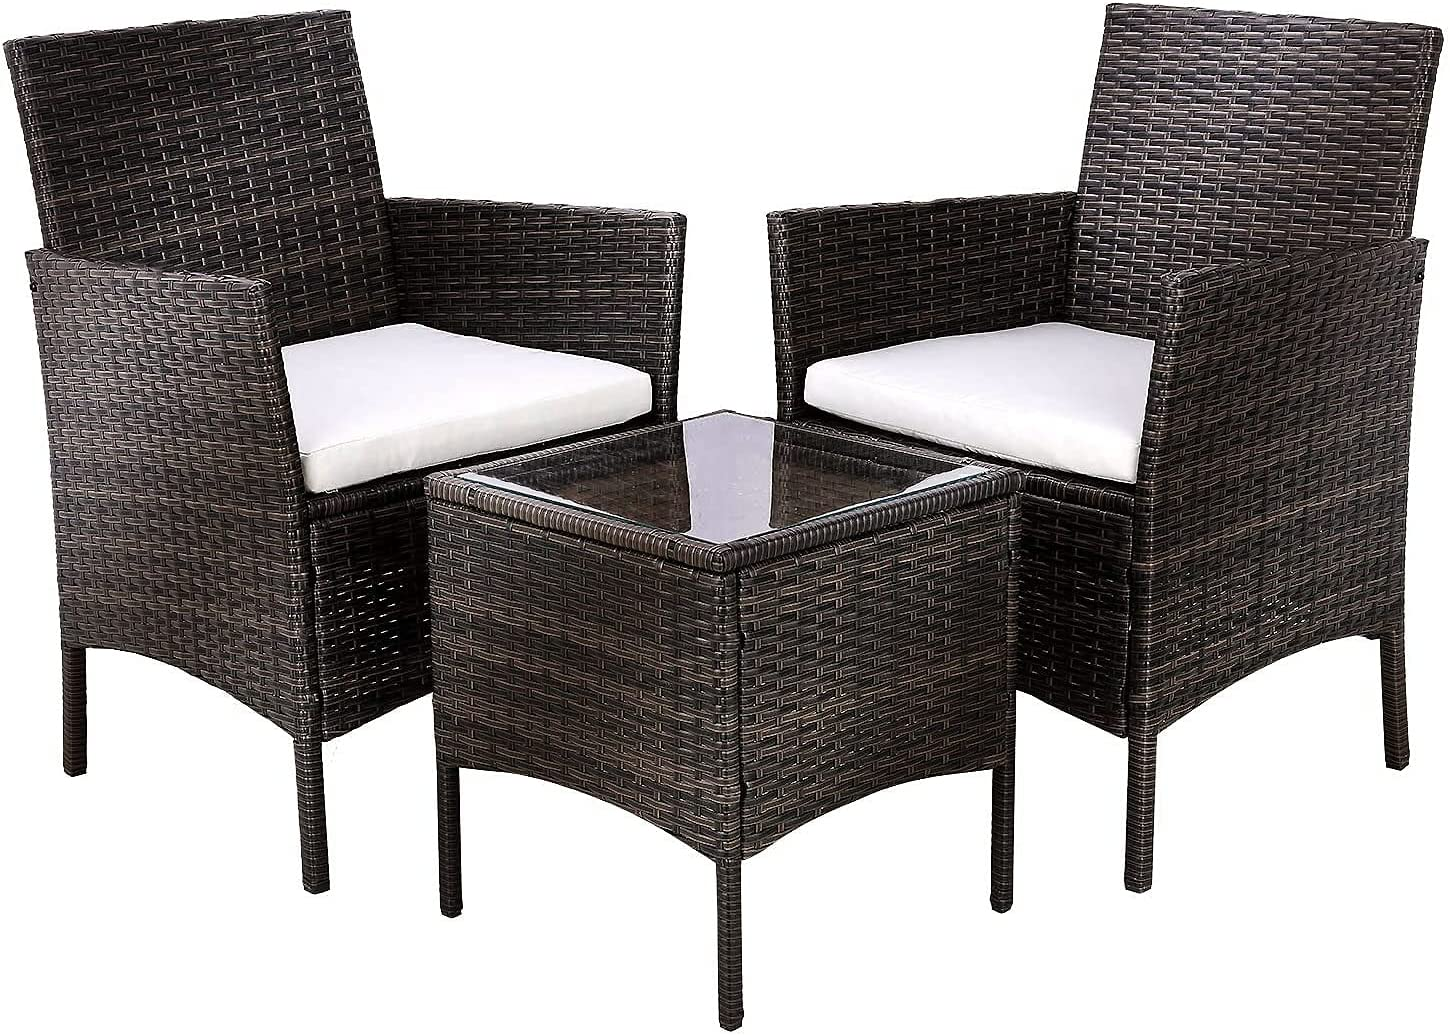 GARTIO 3-Piece Patio Furniture Set, Outdoor Wicker Rattan Patio Bistro Set, All-Weather Waterproof Conversation Chairs w/Glass-Top Coffee Table&Thick Cushions Porch, Backyard, Pool